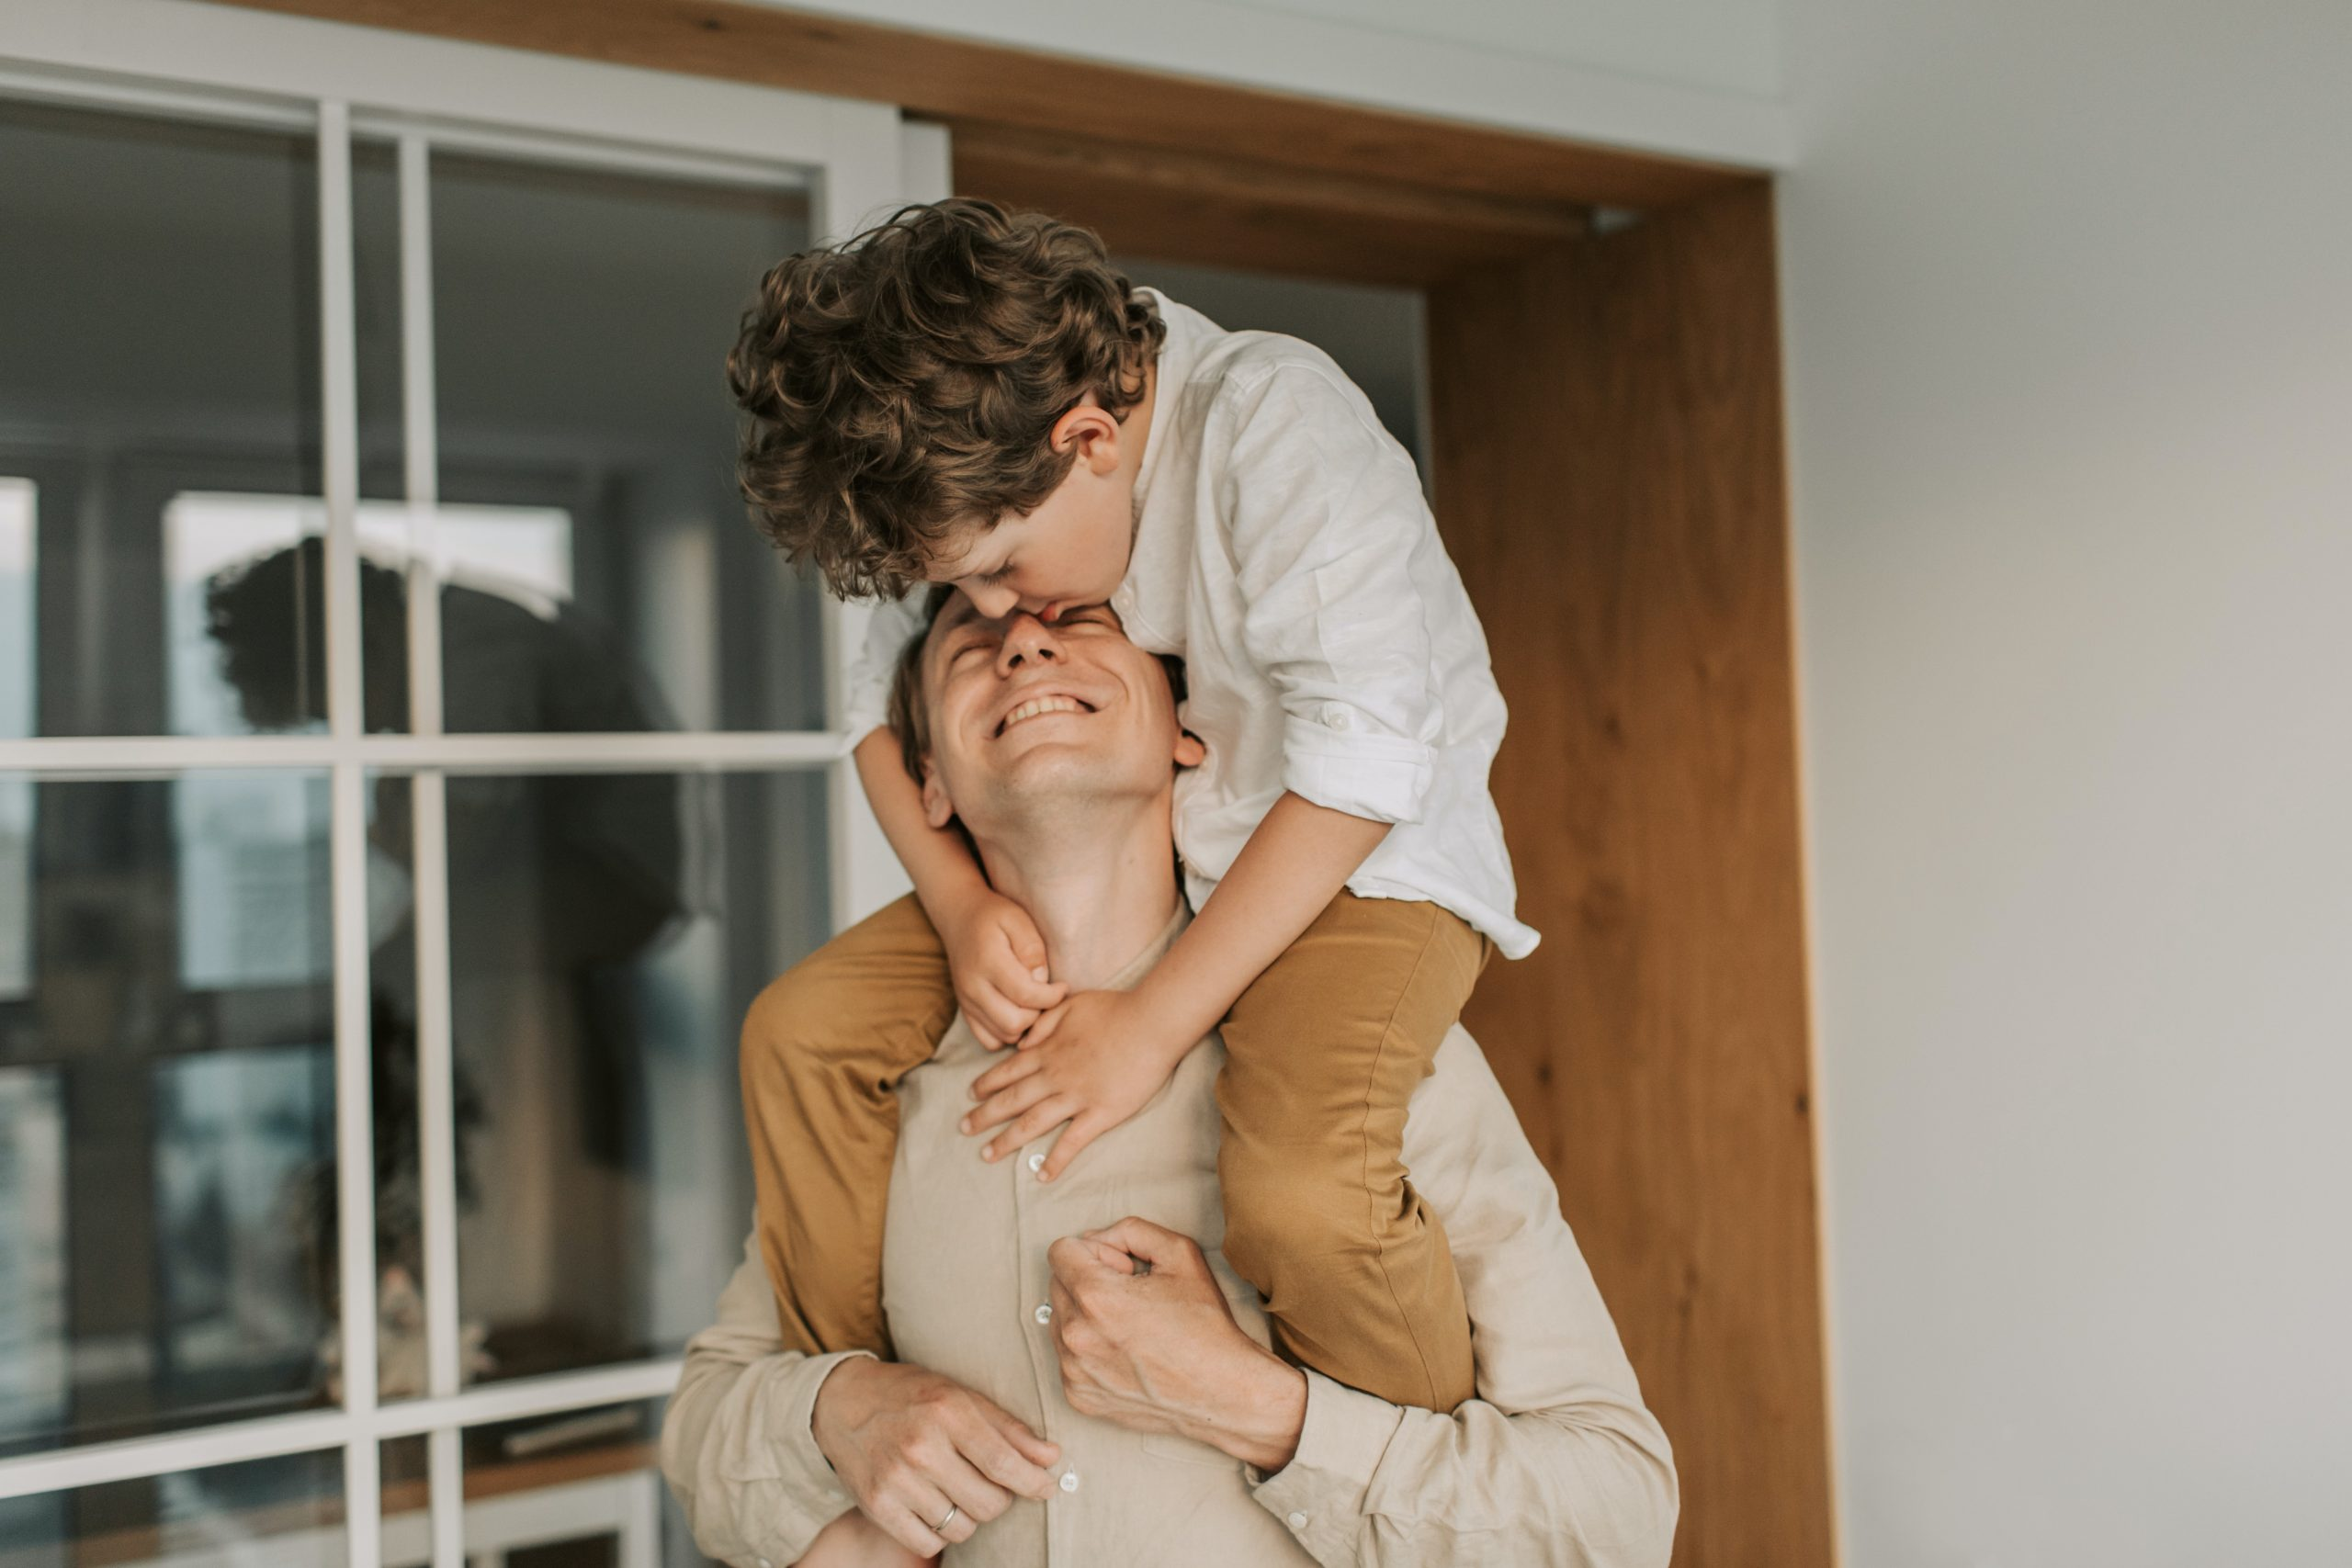 Dad with son on shoulders